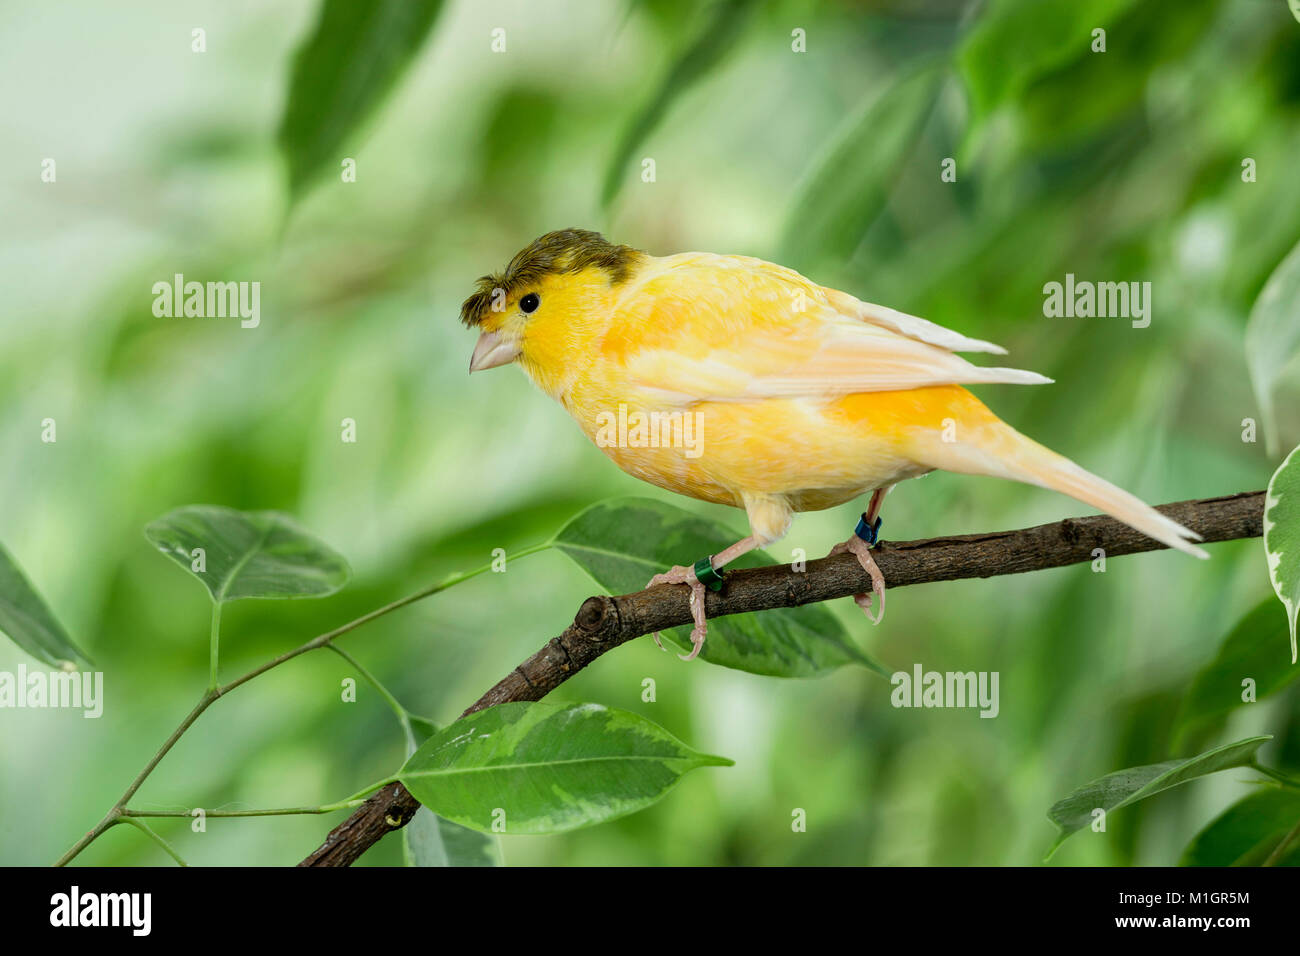 Domestic Canary. Crested bird perched on a Benjamin Fig twig. Germany - Stock Image